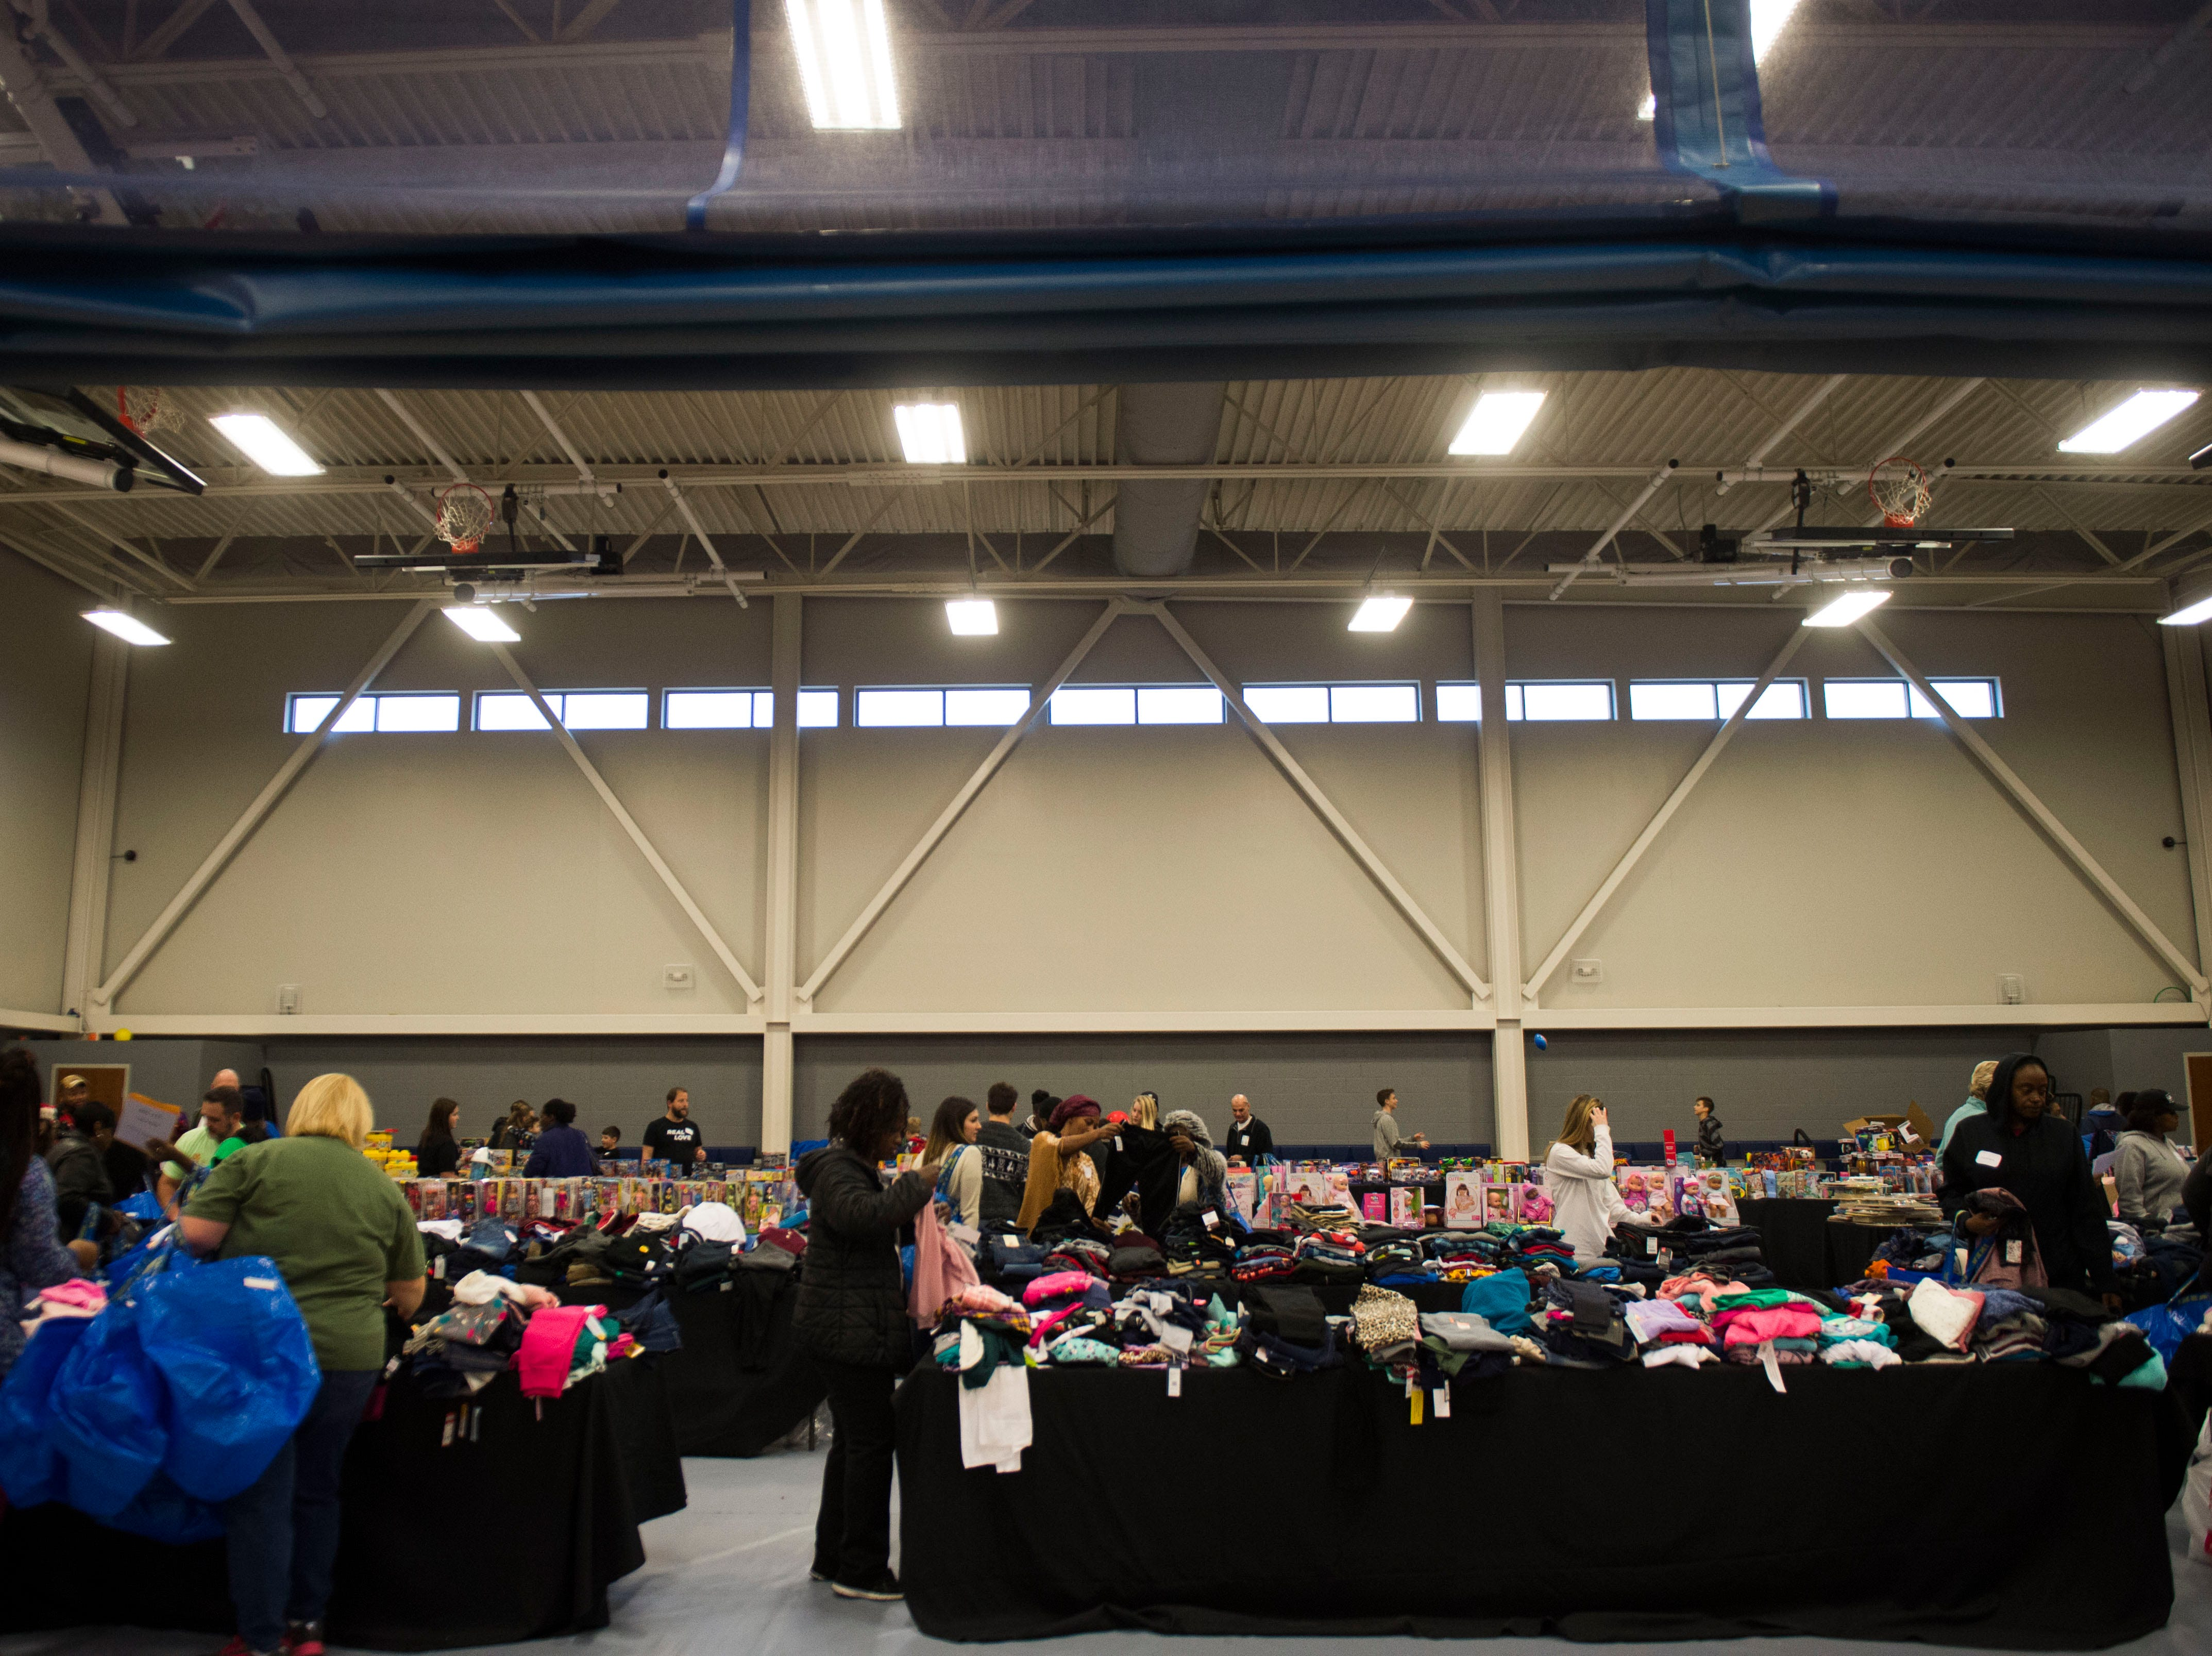 People shop at the Boys and Girls Clubs Regal Teen Center in Knoxville Saturday, Dec. 8, 2018. Parents, grandparents or guardians of over 1,500 underserved children were able to pick out a limited number of free gifts for their child.